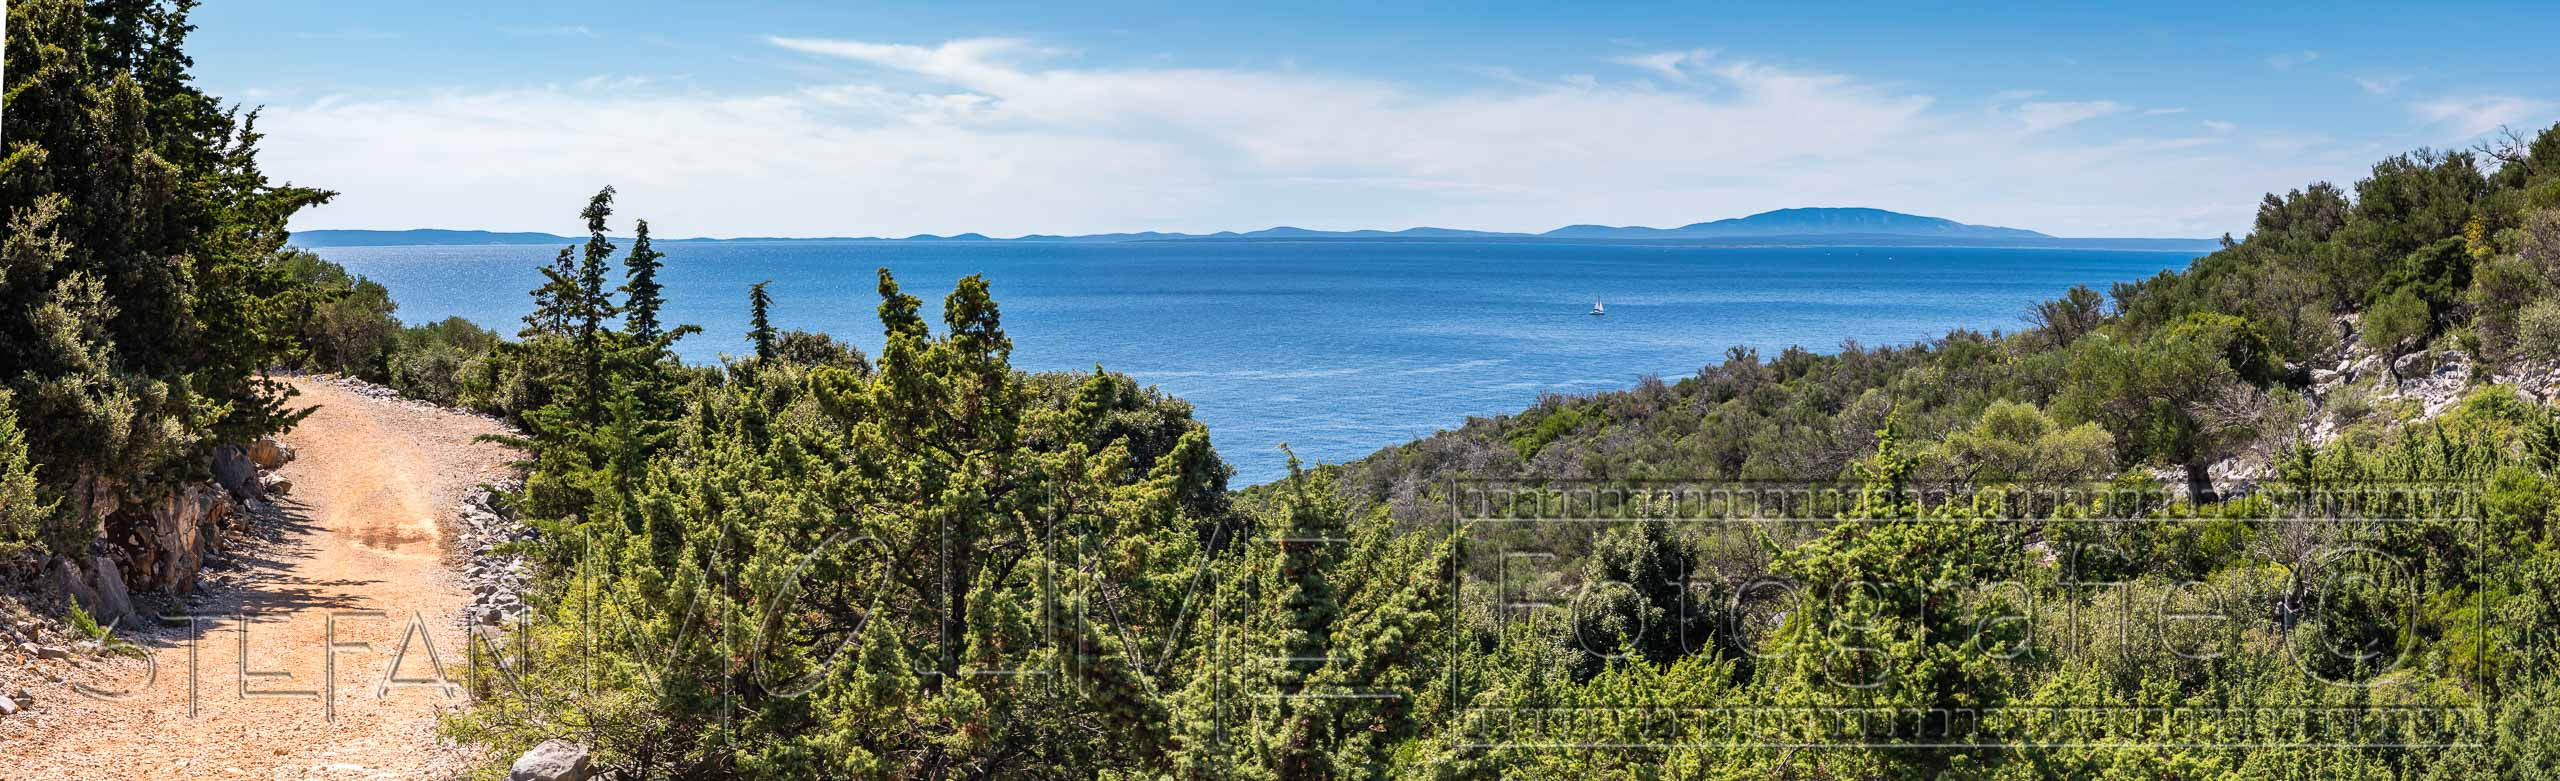 Panorama Landschaft Insel Pag